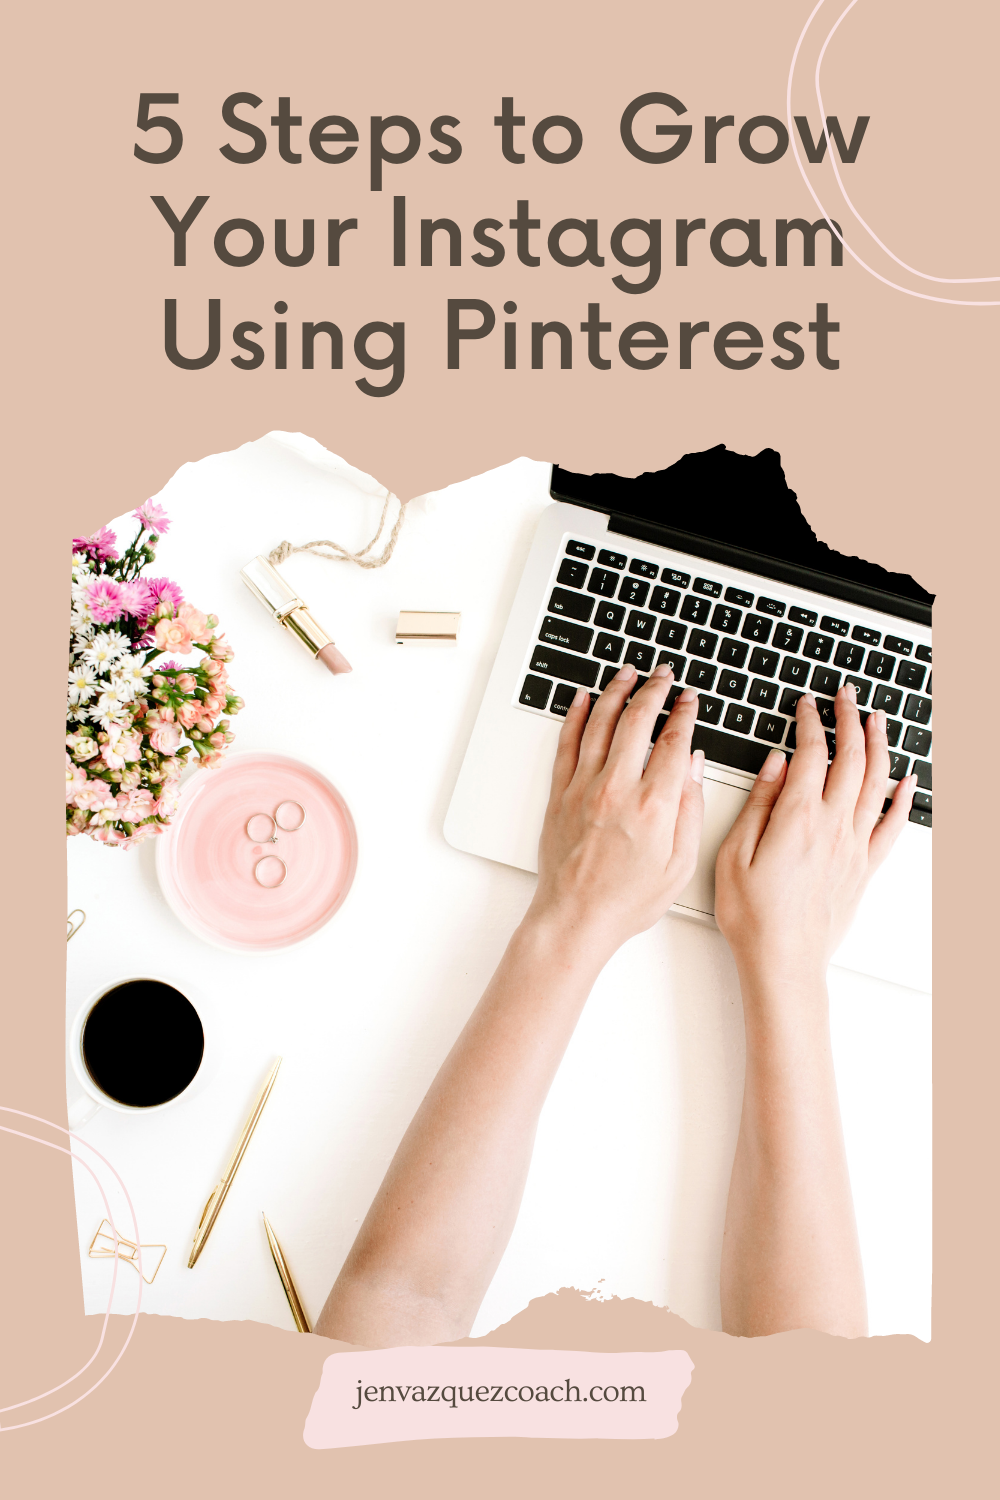 5 Steps to Grow Your Instagram Using Pinterest1